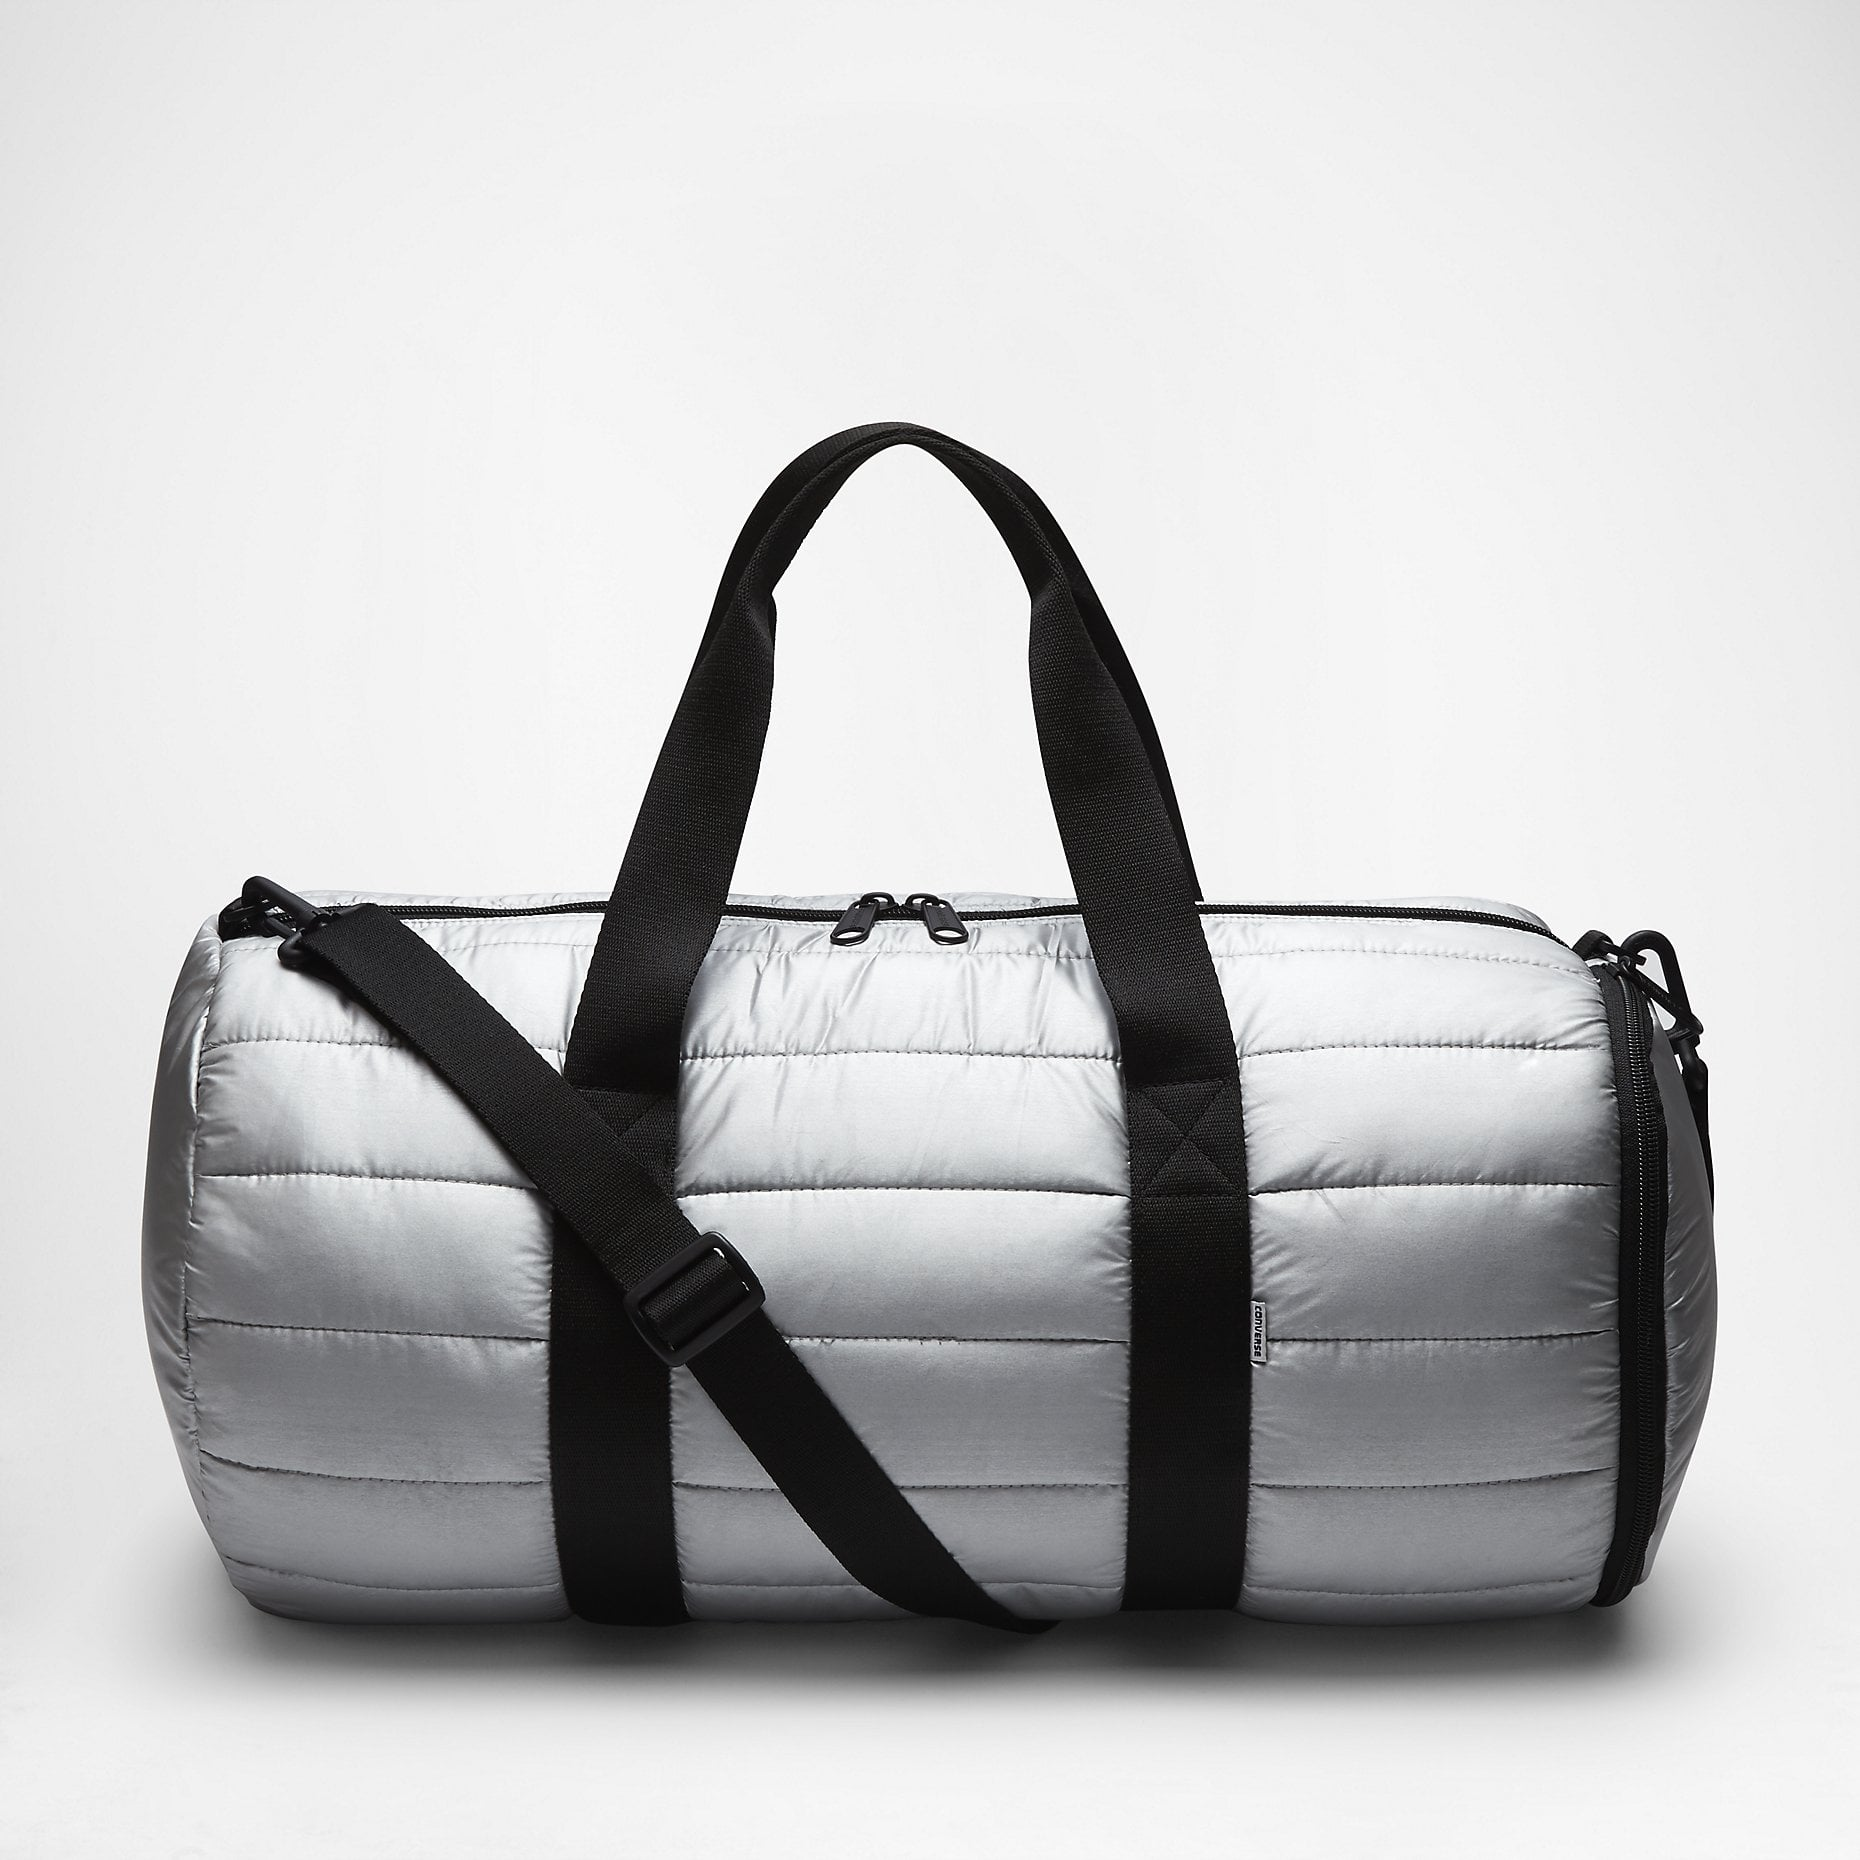 Converse Packable Duffle   Stash Your Gear in One of These 9 ...